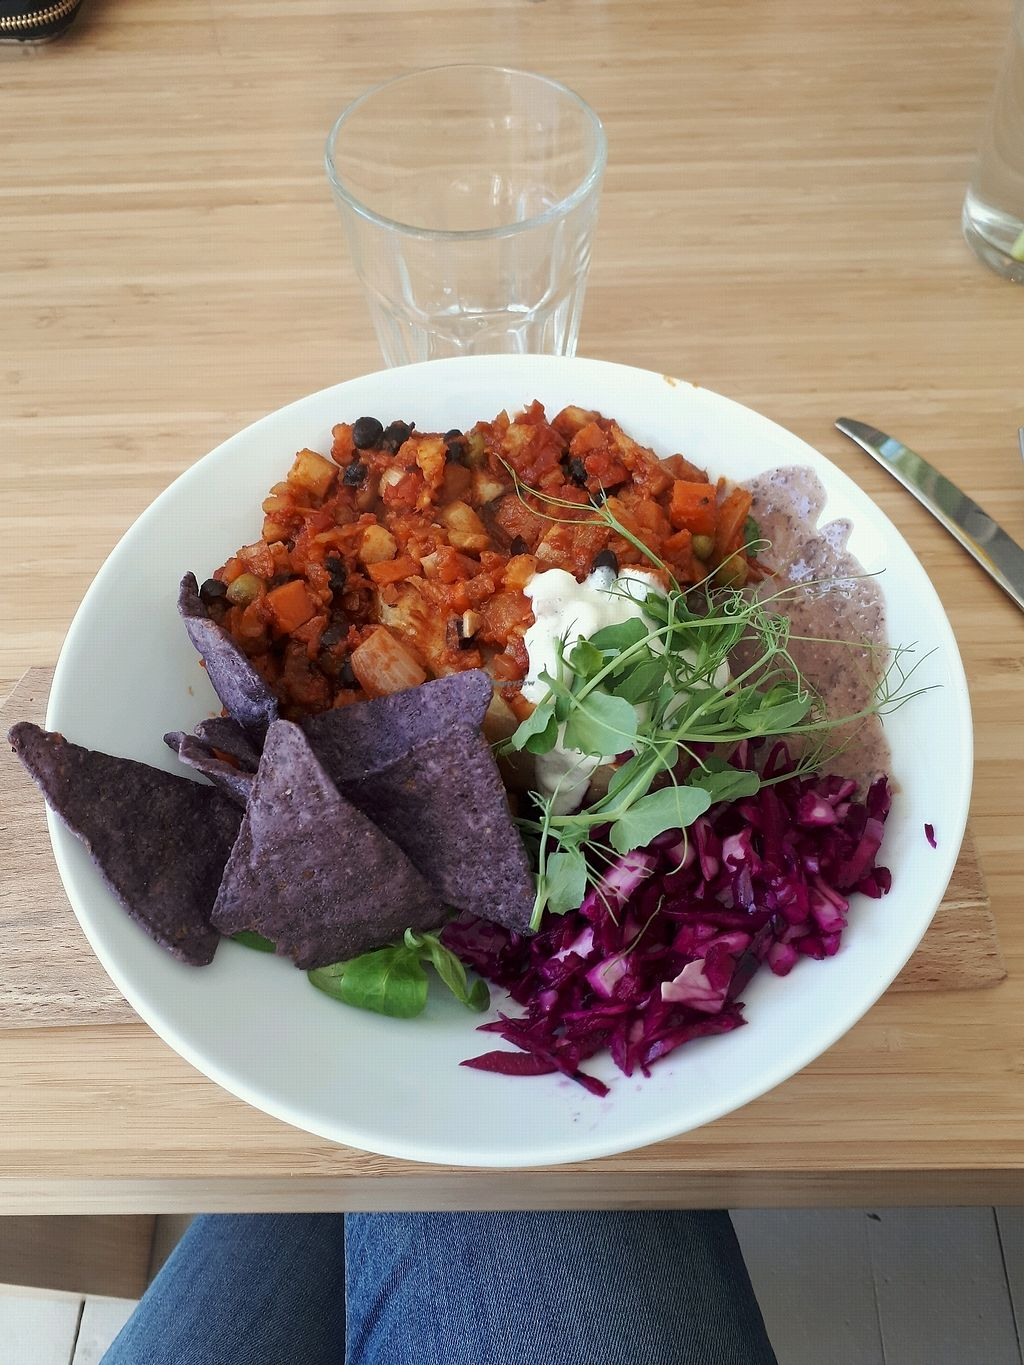 """Photo of Muff   by <a href=""""/members/profile/Kaourin"""">Kaourin</a> <br/>Vegan and gluten free Buddha bowl <br/> April 6, 2018  - <a href='/contact/abuse/image/90493/381671'>Report</a>"""